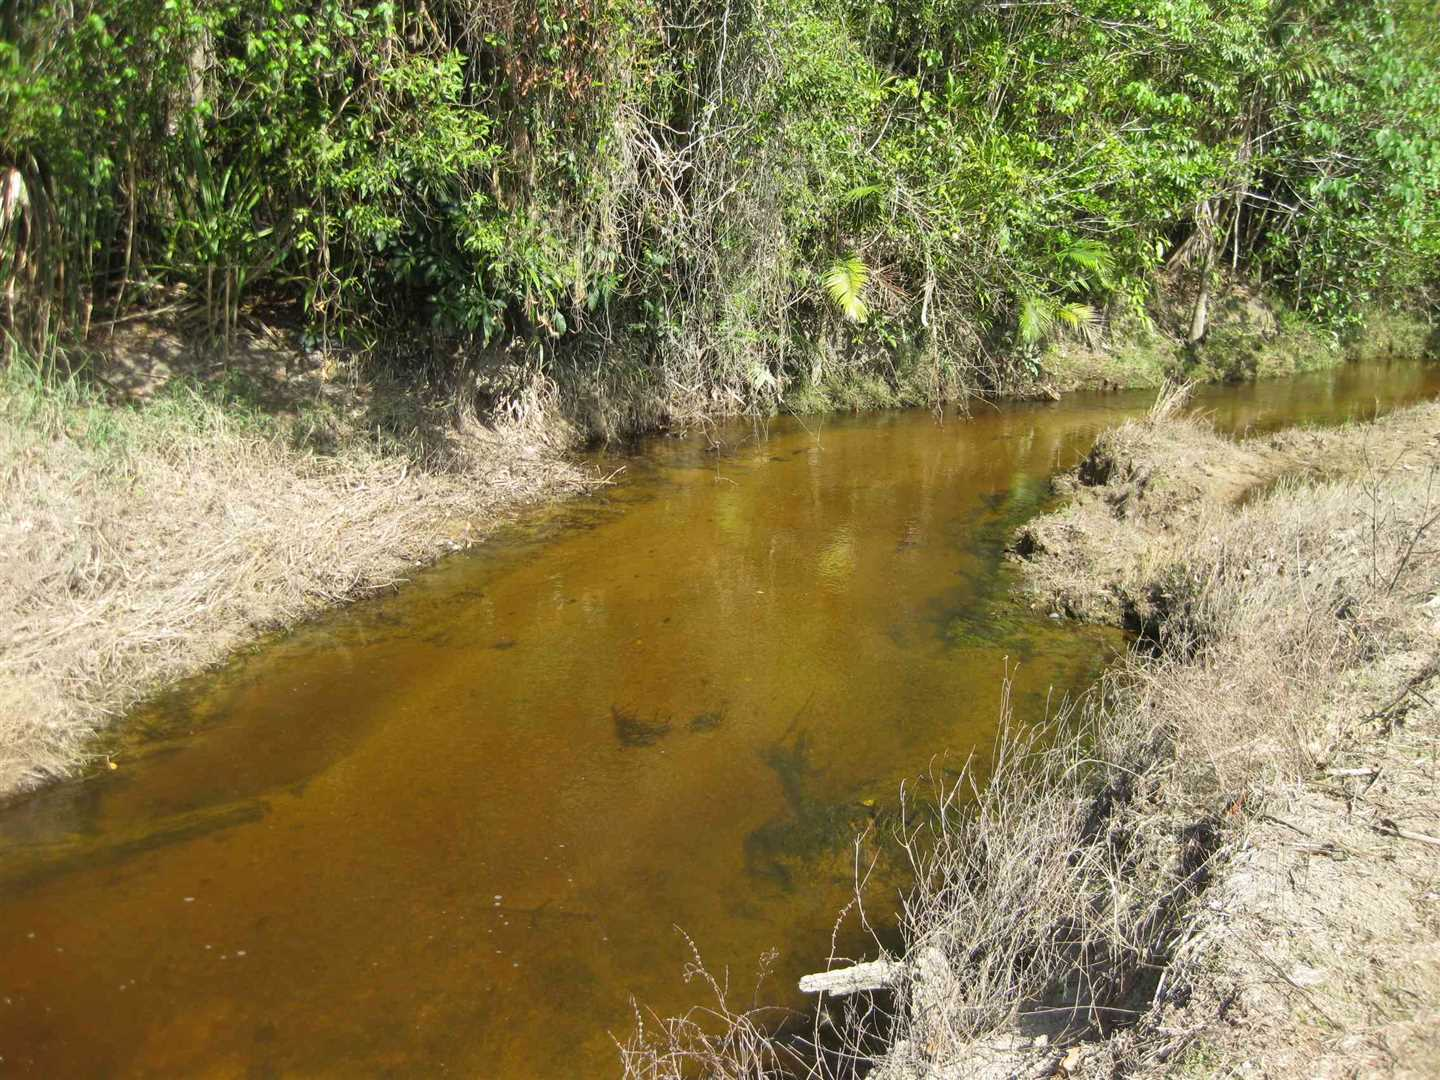 View of part of internal creek in the property